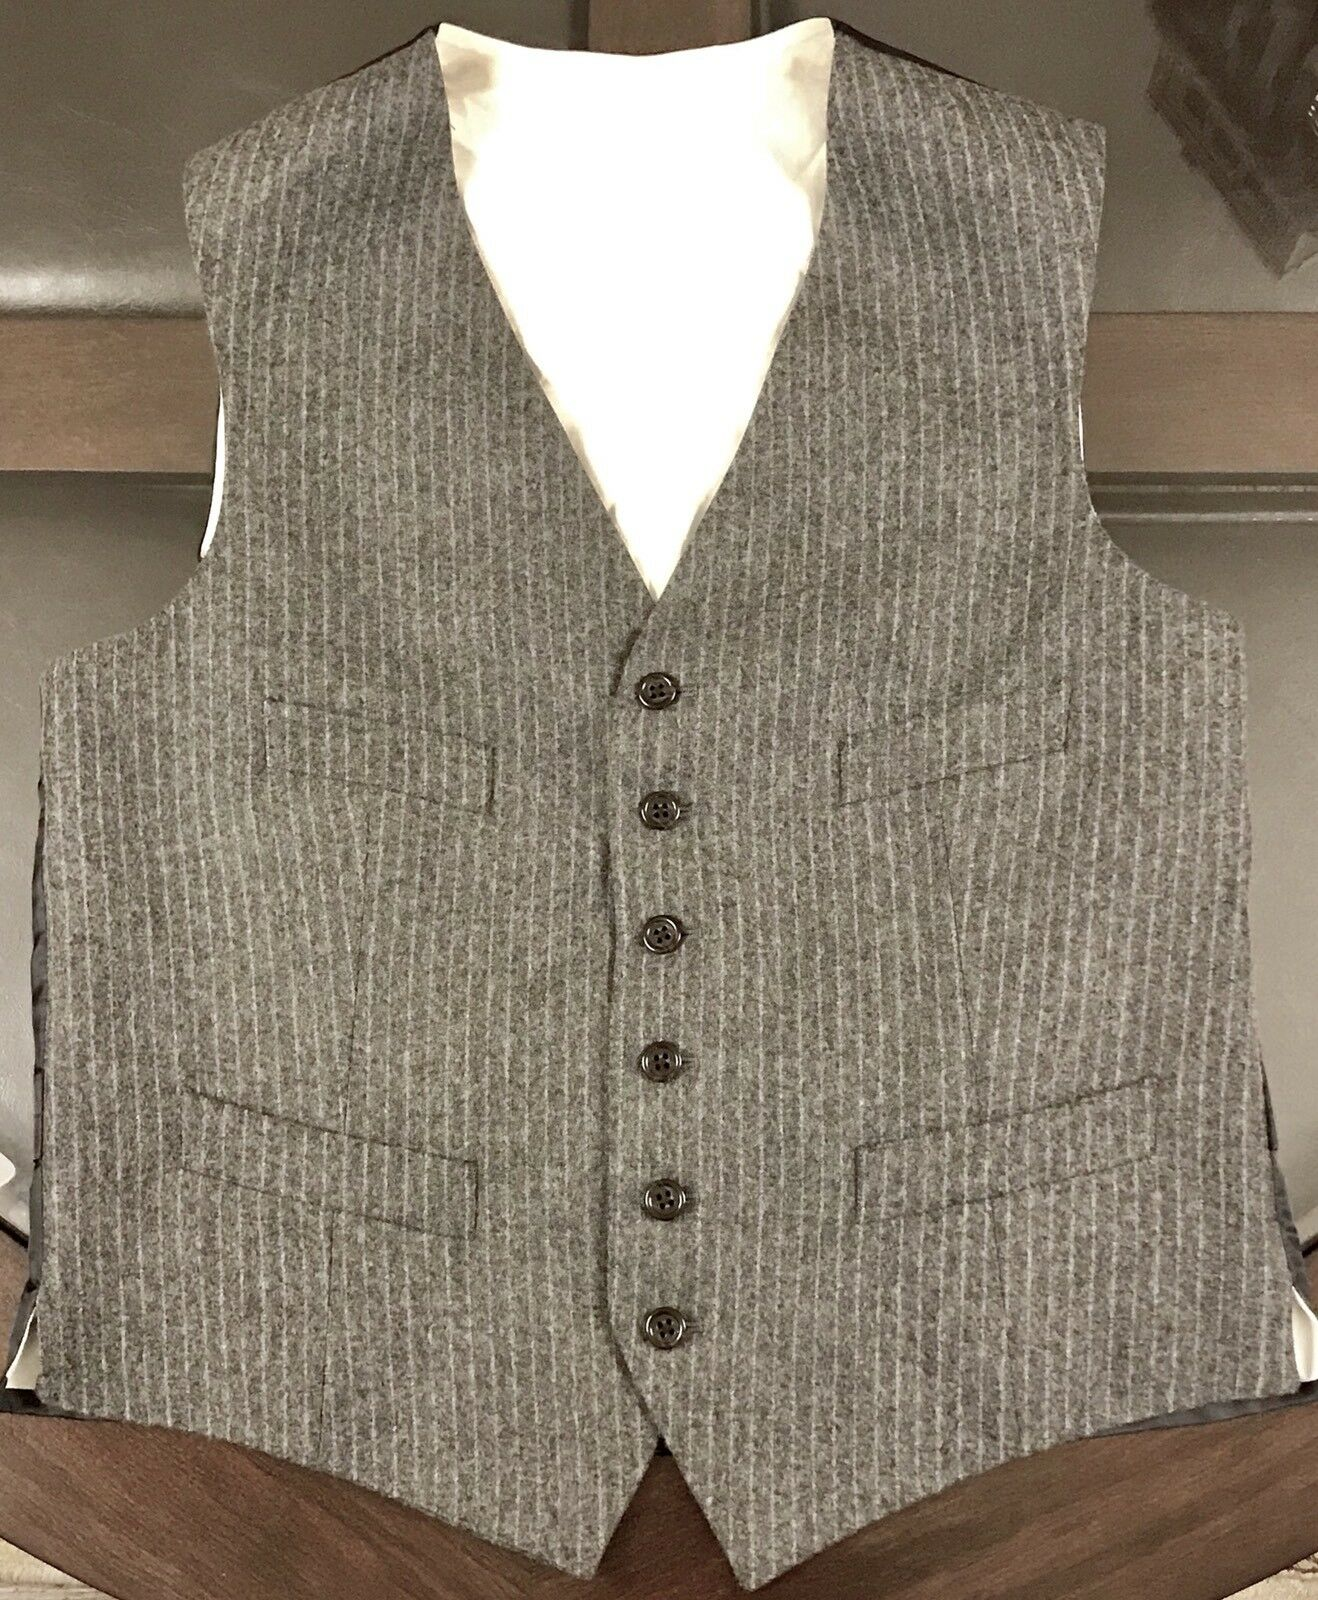 Ralph Lauren Vest 100% Virgin Wool Pinstripes Soft grau Sz 40 Made In Slovakia